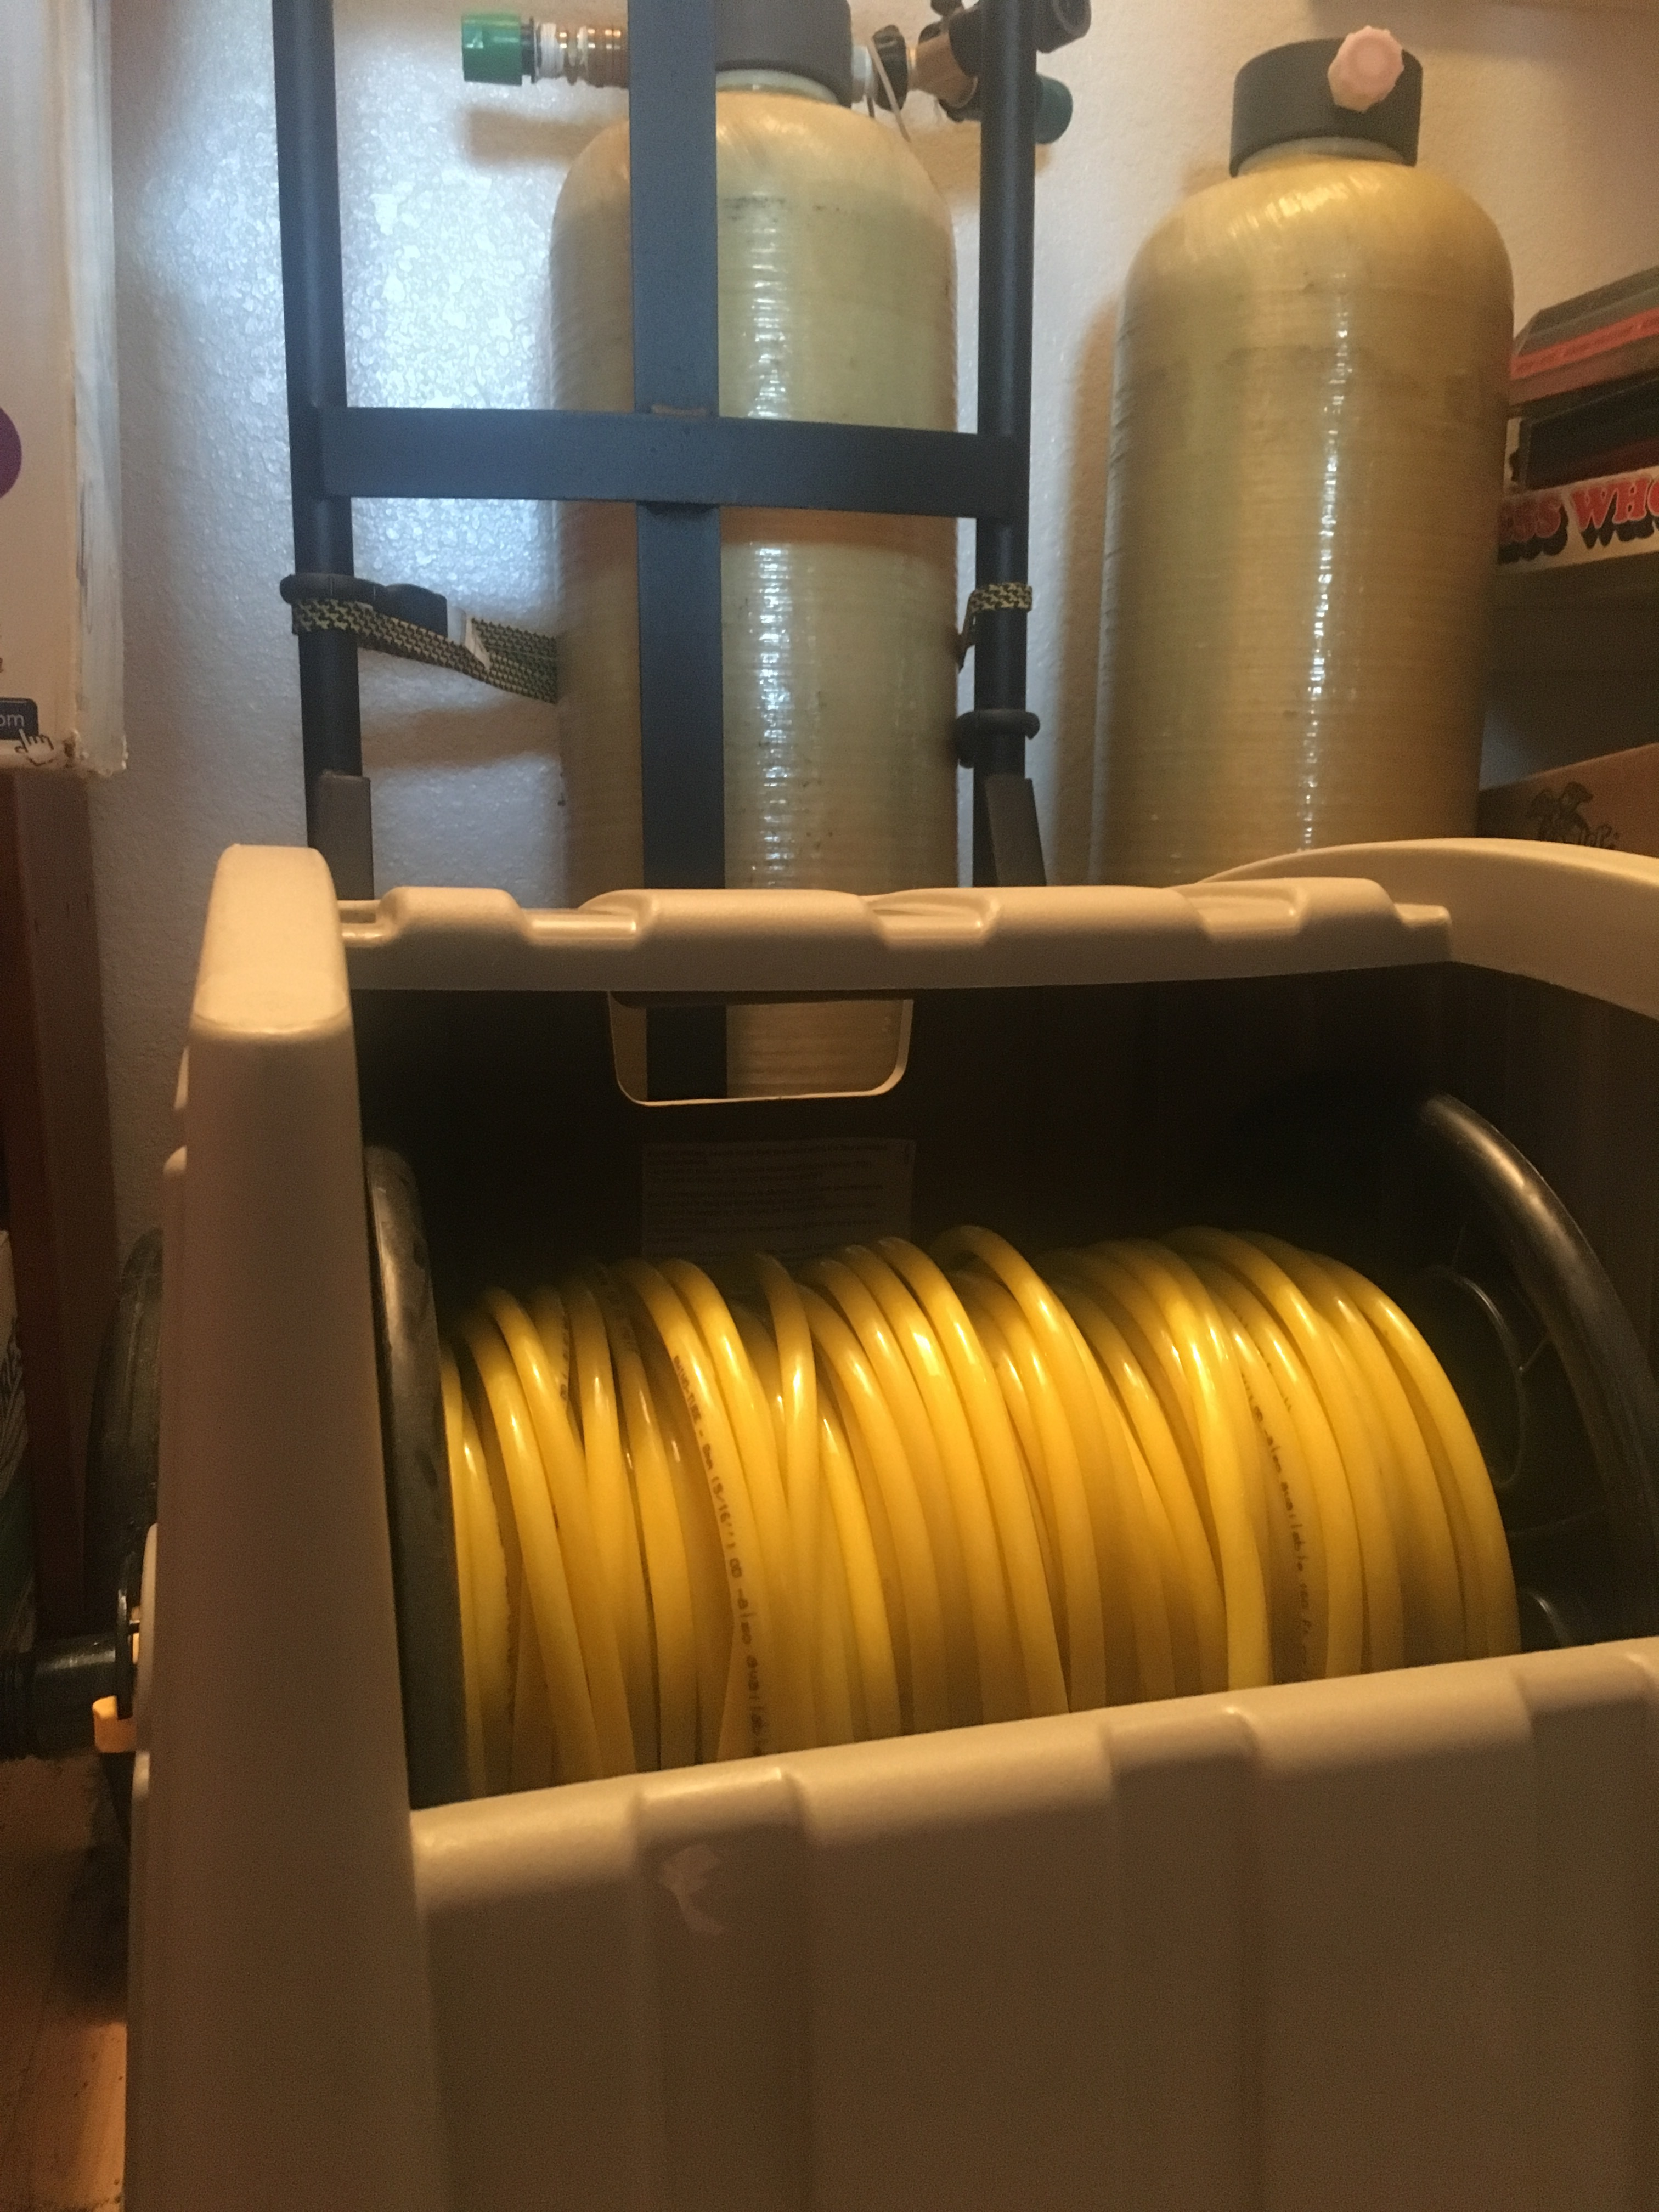 Winter storage for WFP hose? - Waterfed Poles - Window Cleaning Resource